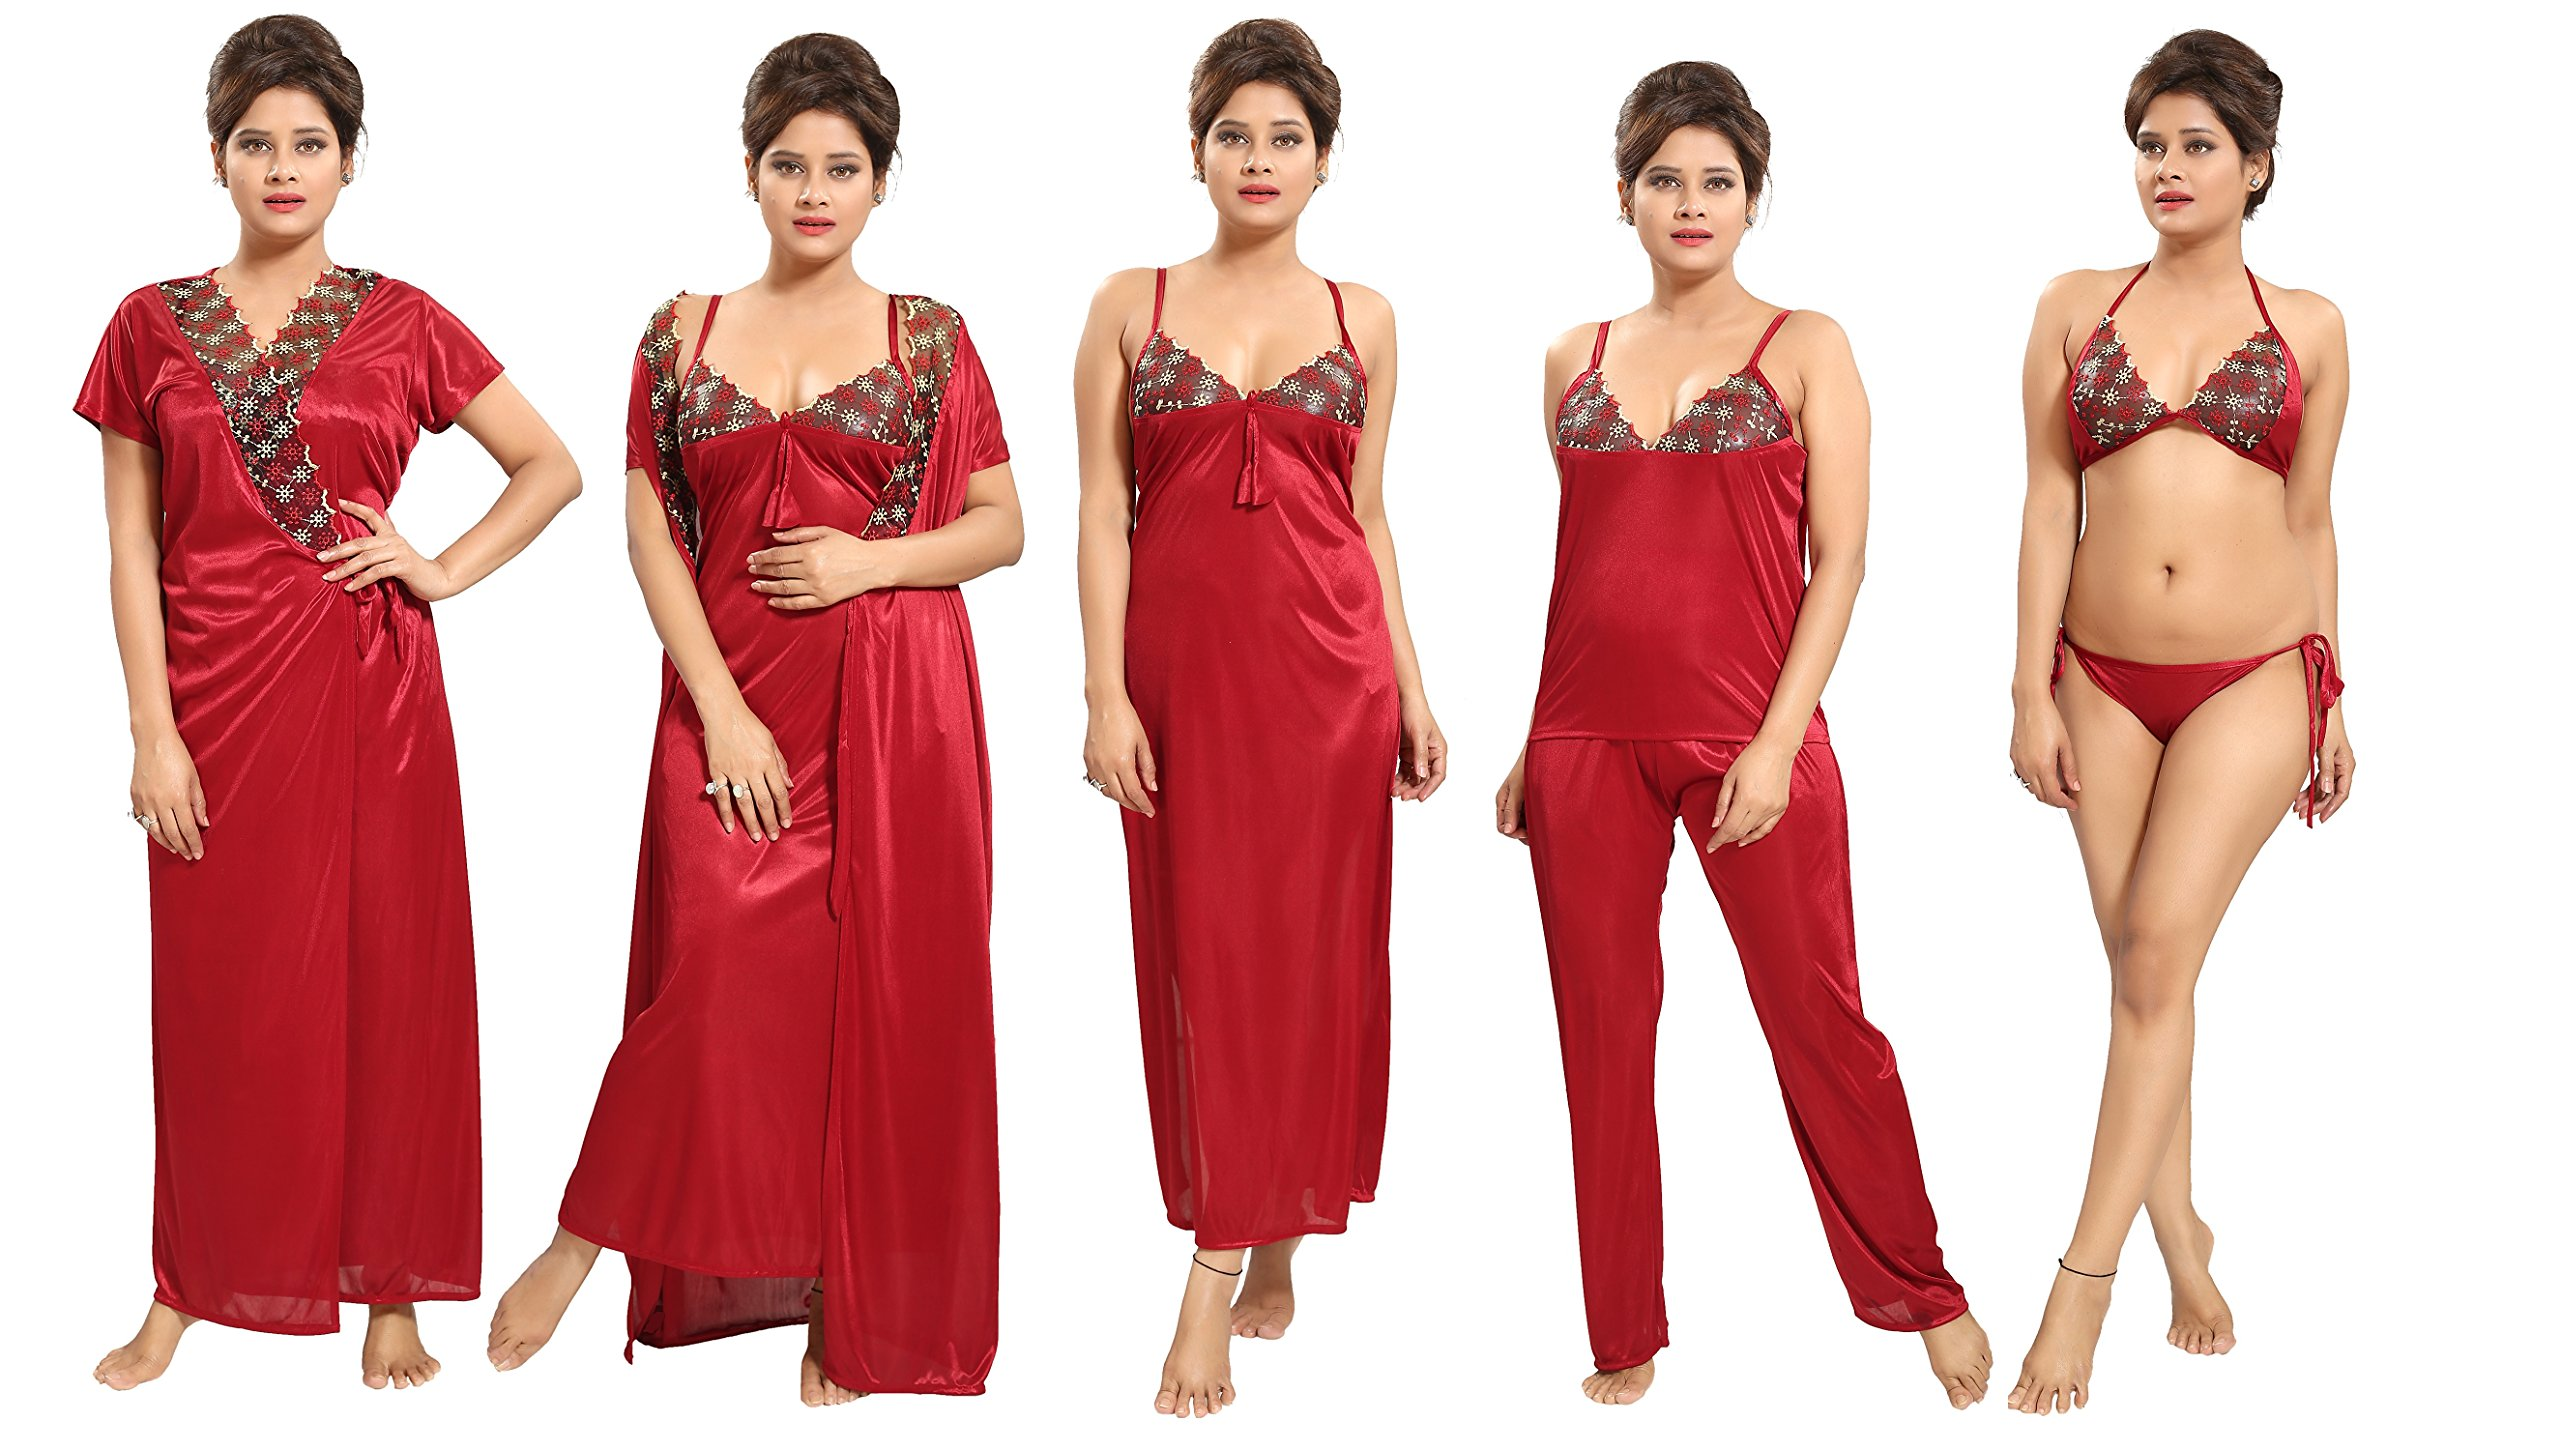 2aaced1c47 Tucute Women's Satin Nightwear Set of 6 Pcs Nighty, Wrap Gown, Top ...